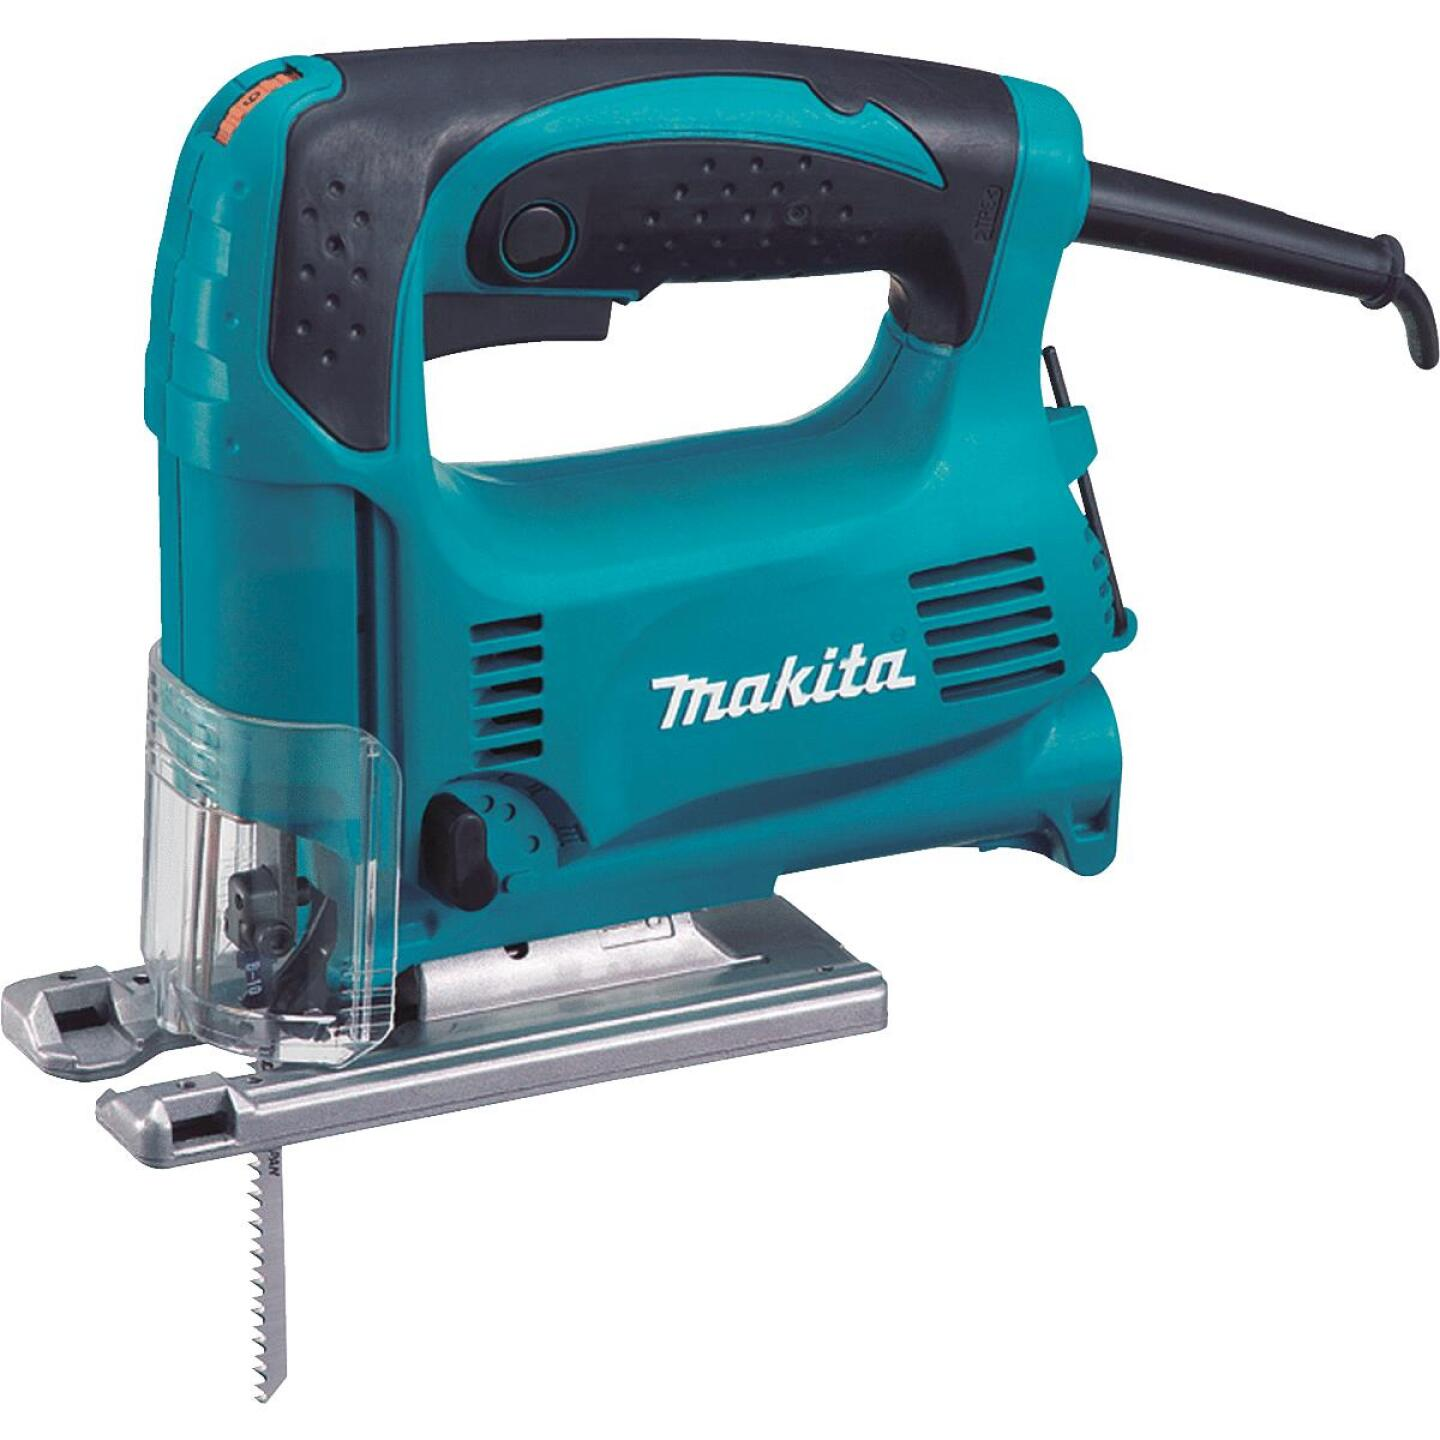 Makita 3.9A 3-Position 500-3100 SPM Top-Handle Jig Saw Kit Image 1